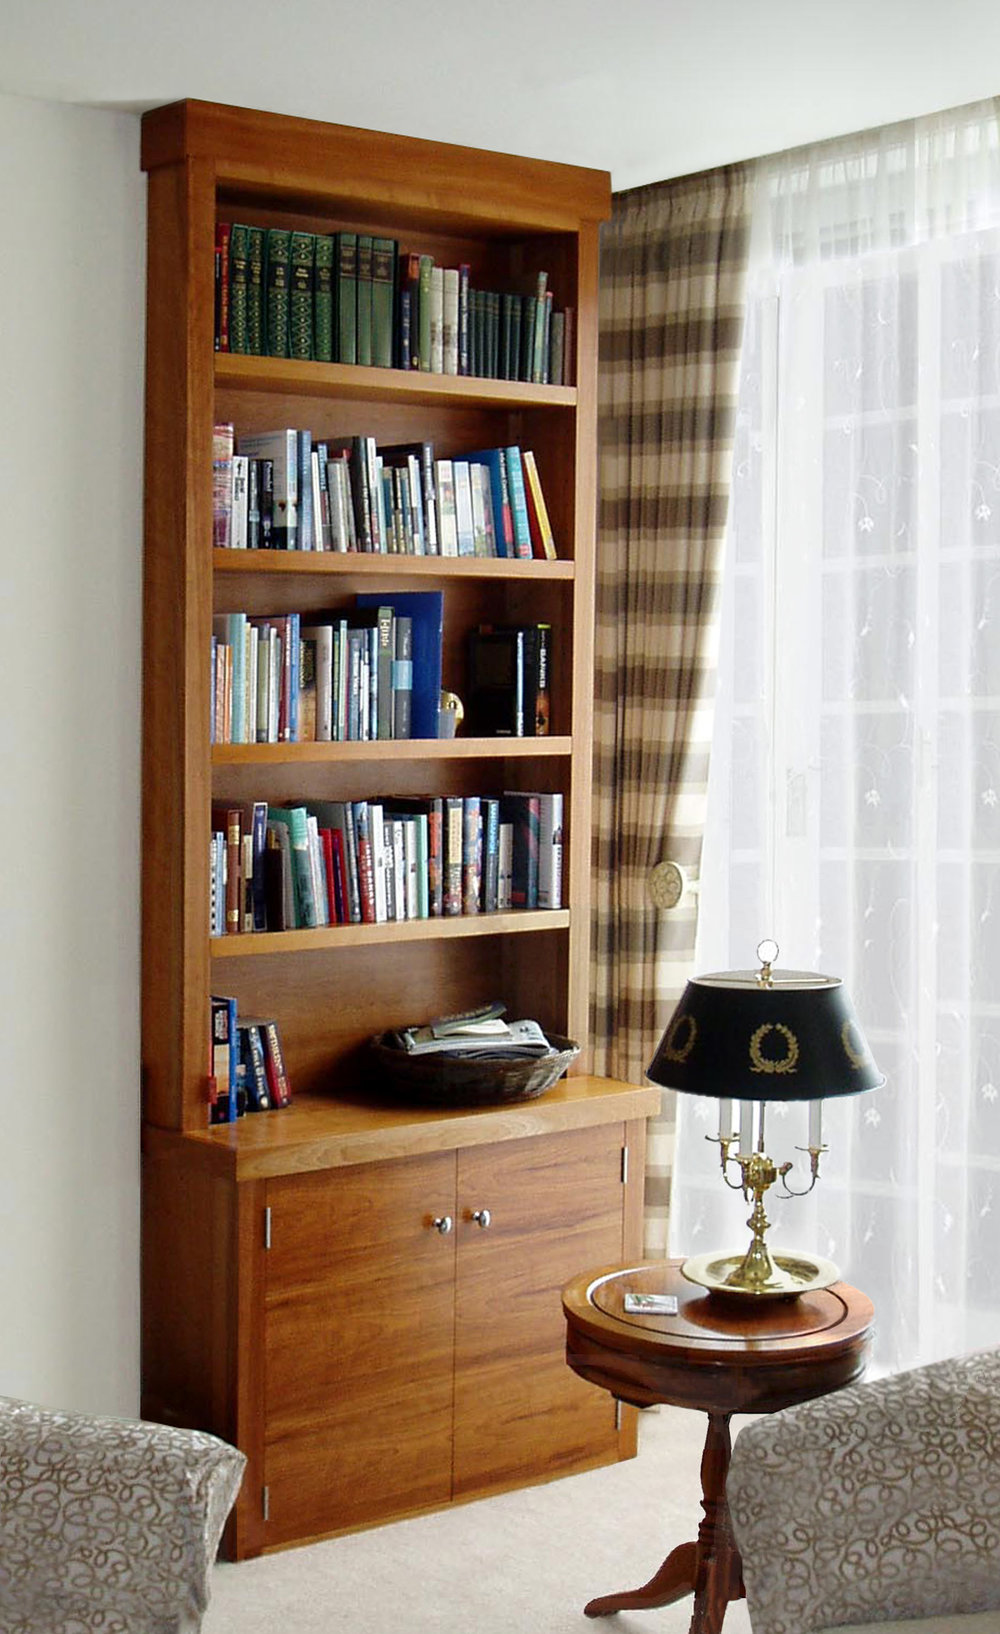 Bookcases in cherry wood, Midlothian.